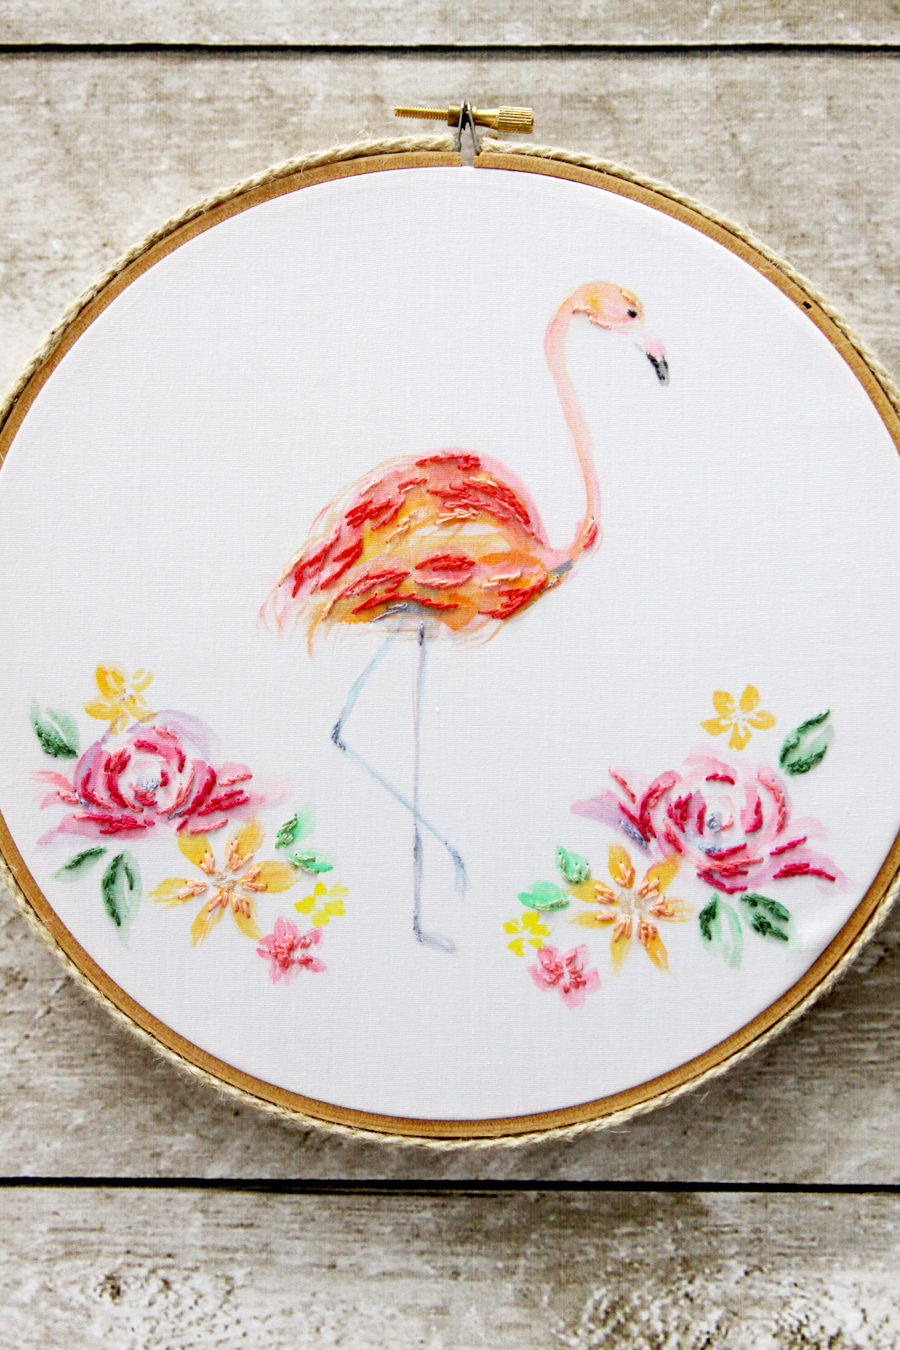 Home decorators collection revisited southern hospitality - Diy Flamingo Watercolor Embroidery By Flamingo Toes